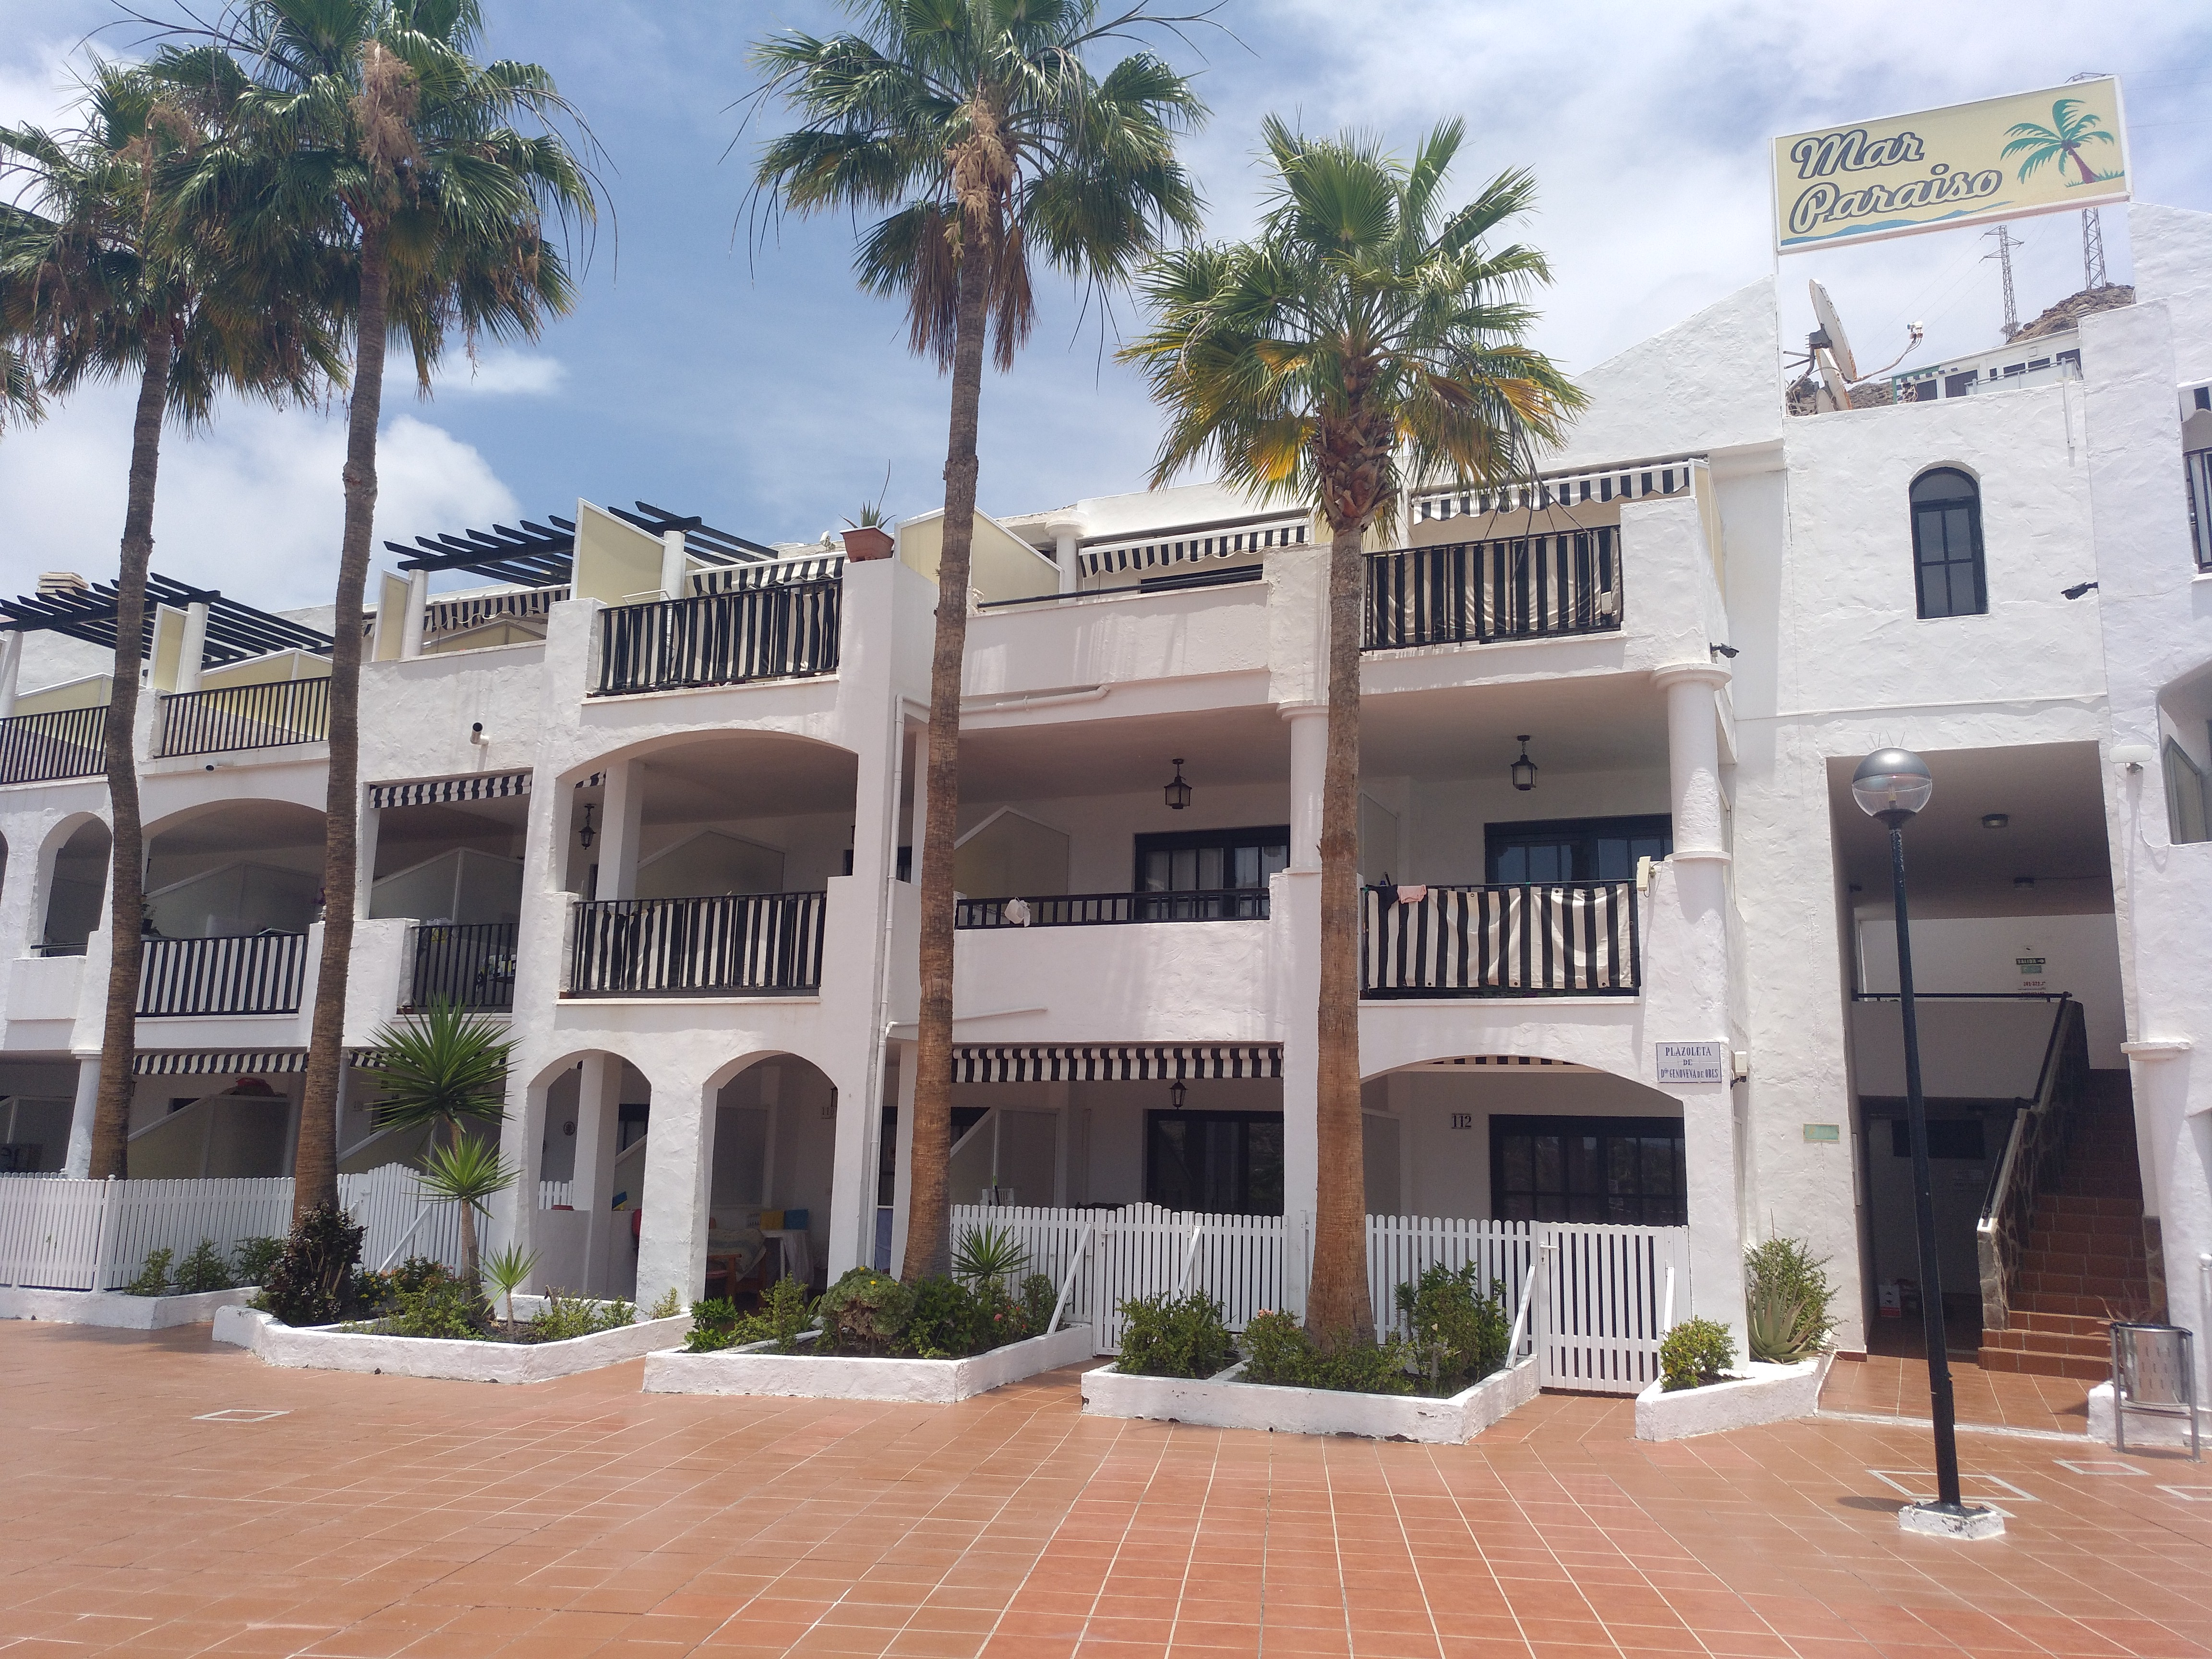 1 Bedroom Apartment with Sea Views & All Day Sun in Mar Paraiso – Playa del Cura